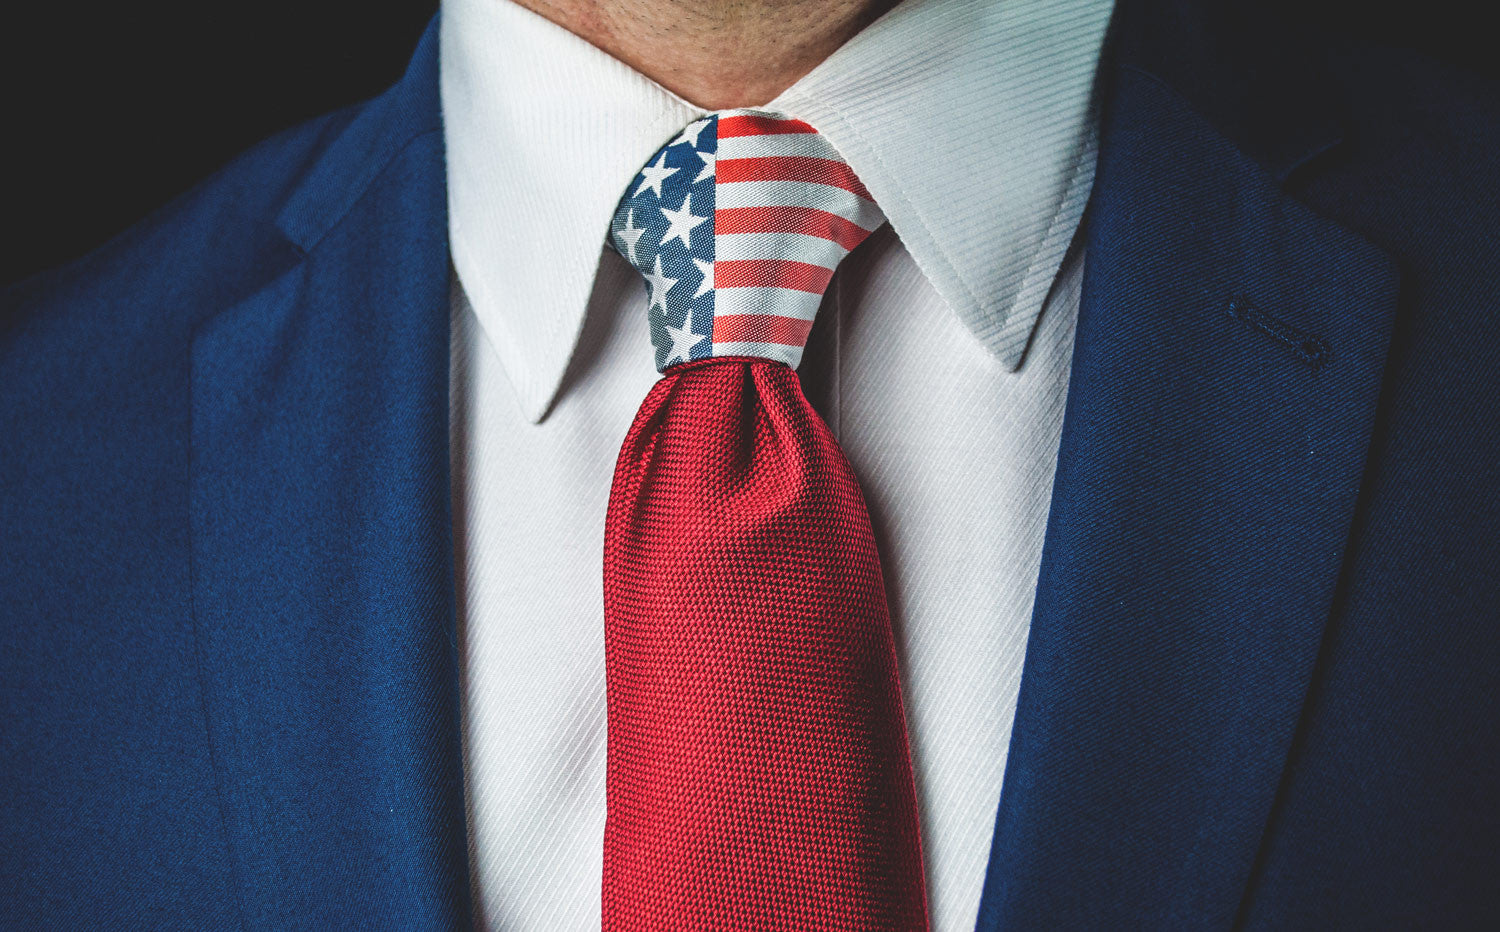 The Patriot Proper Knot™